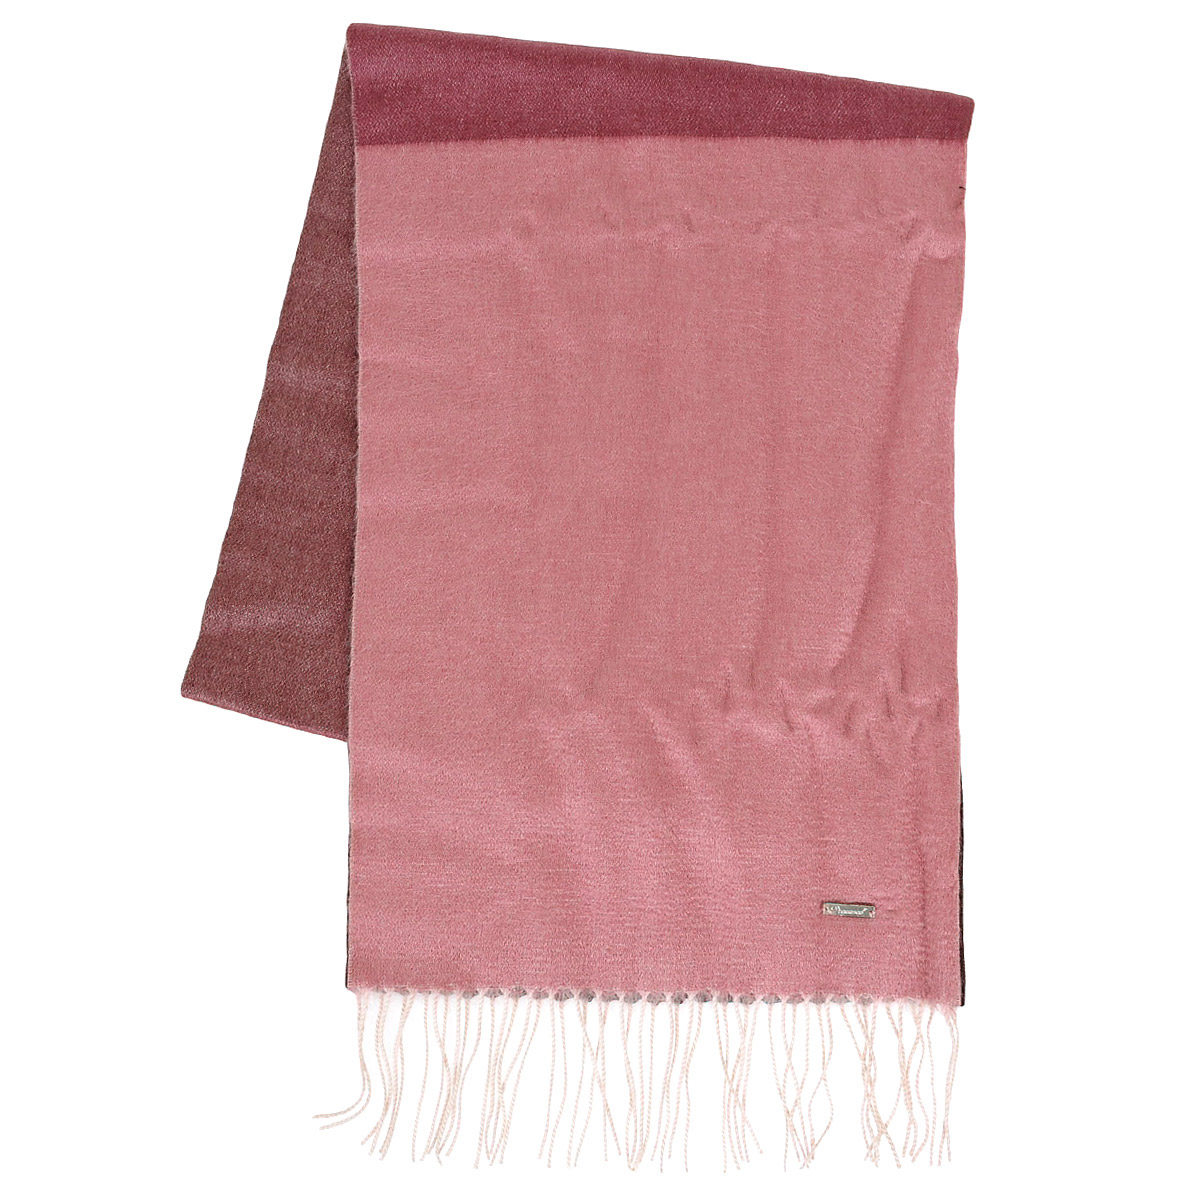 8718e88429db Dsquared2 Unisex Cashmere   Silk Scarf 160 x 30 cm - Glamood Outlet